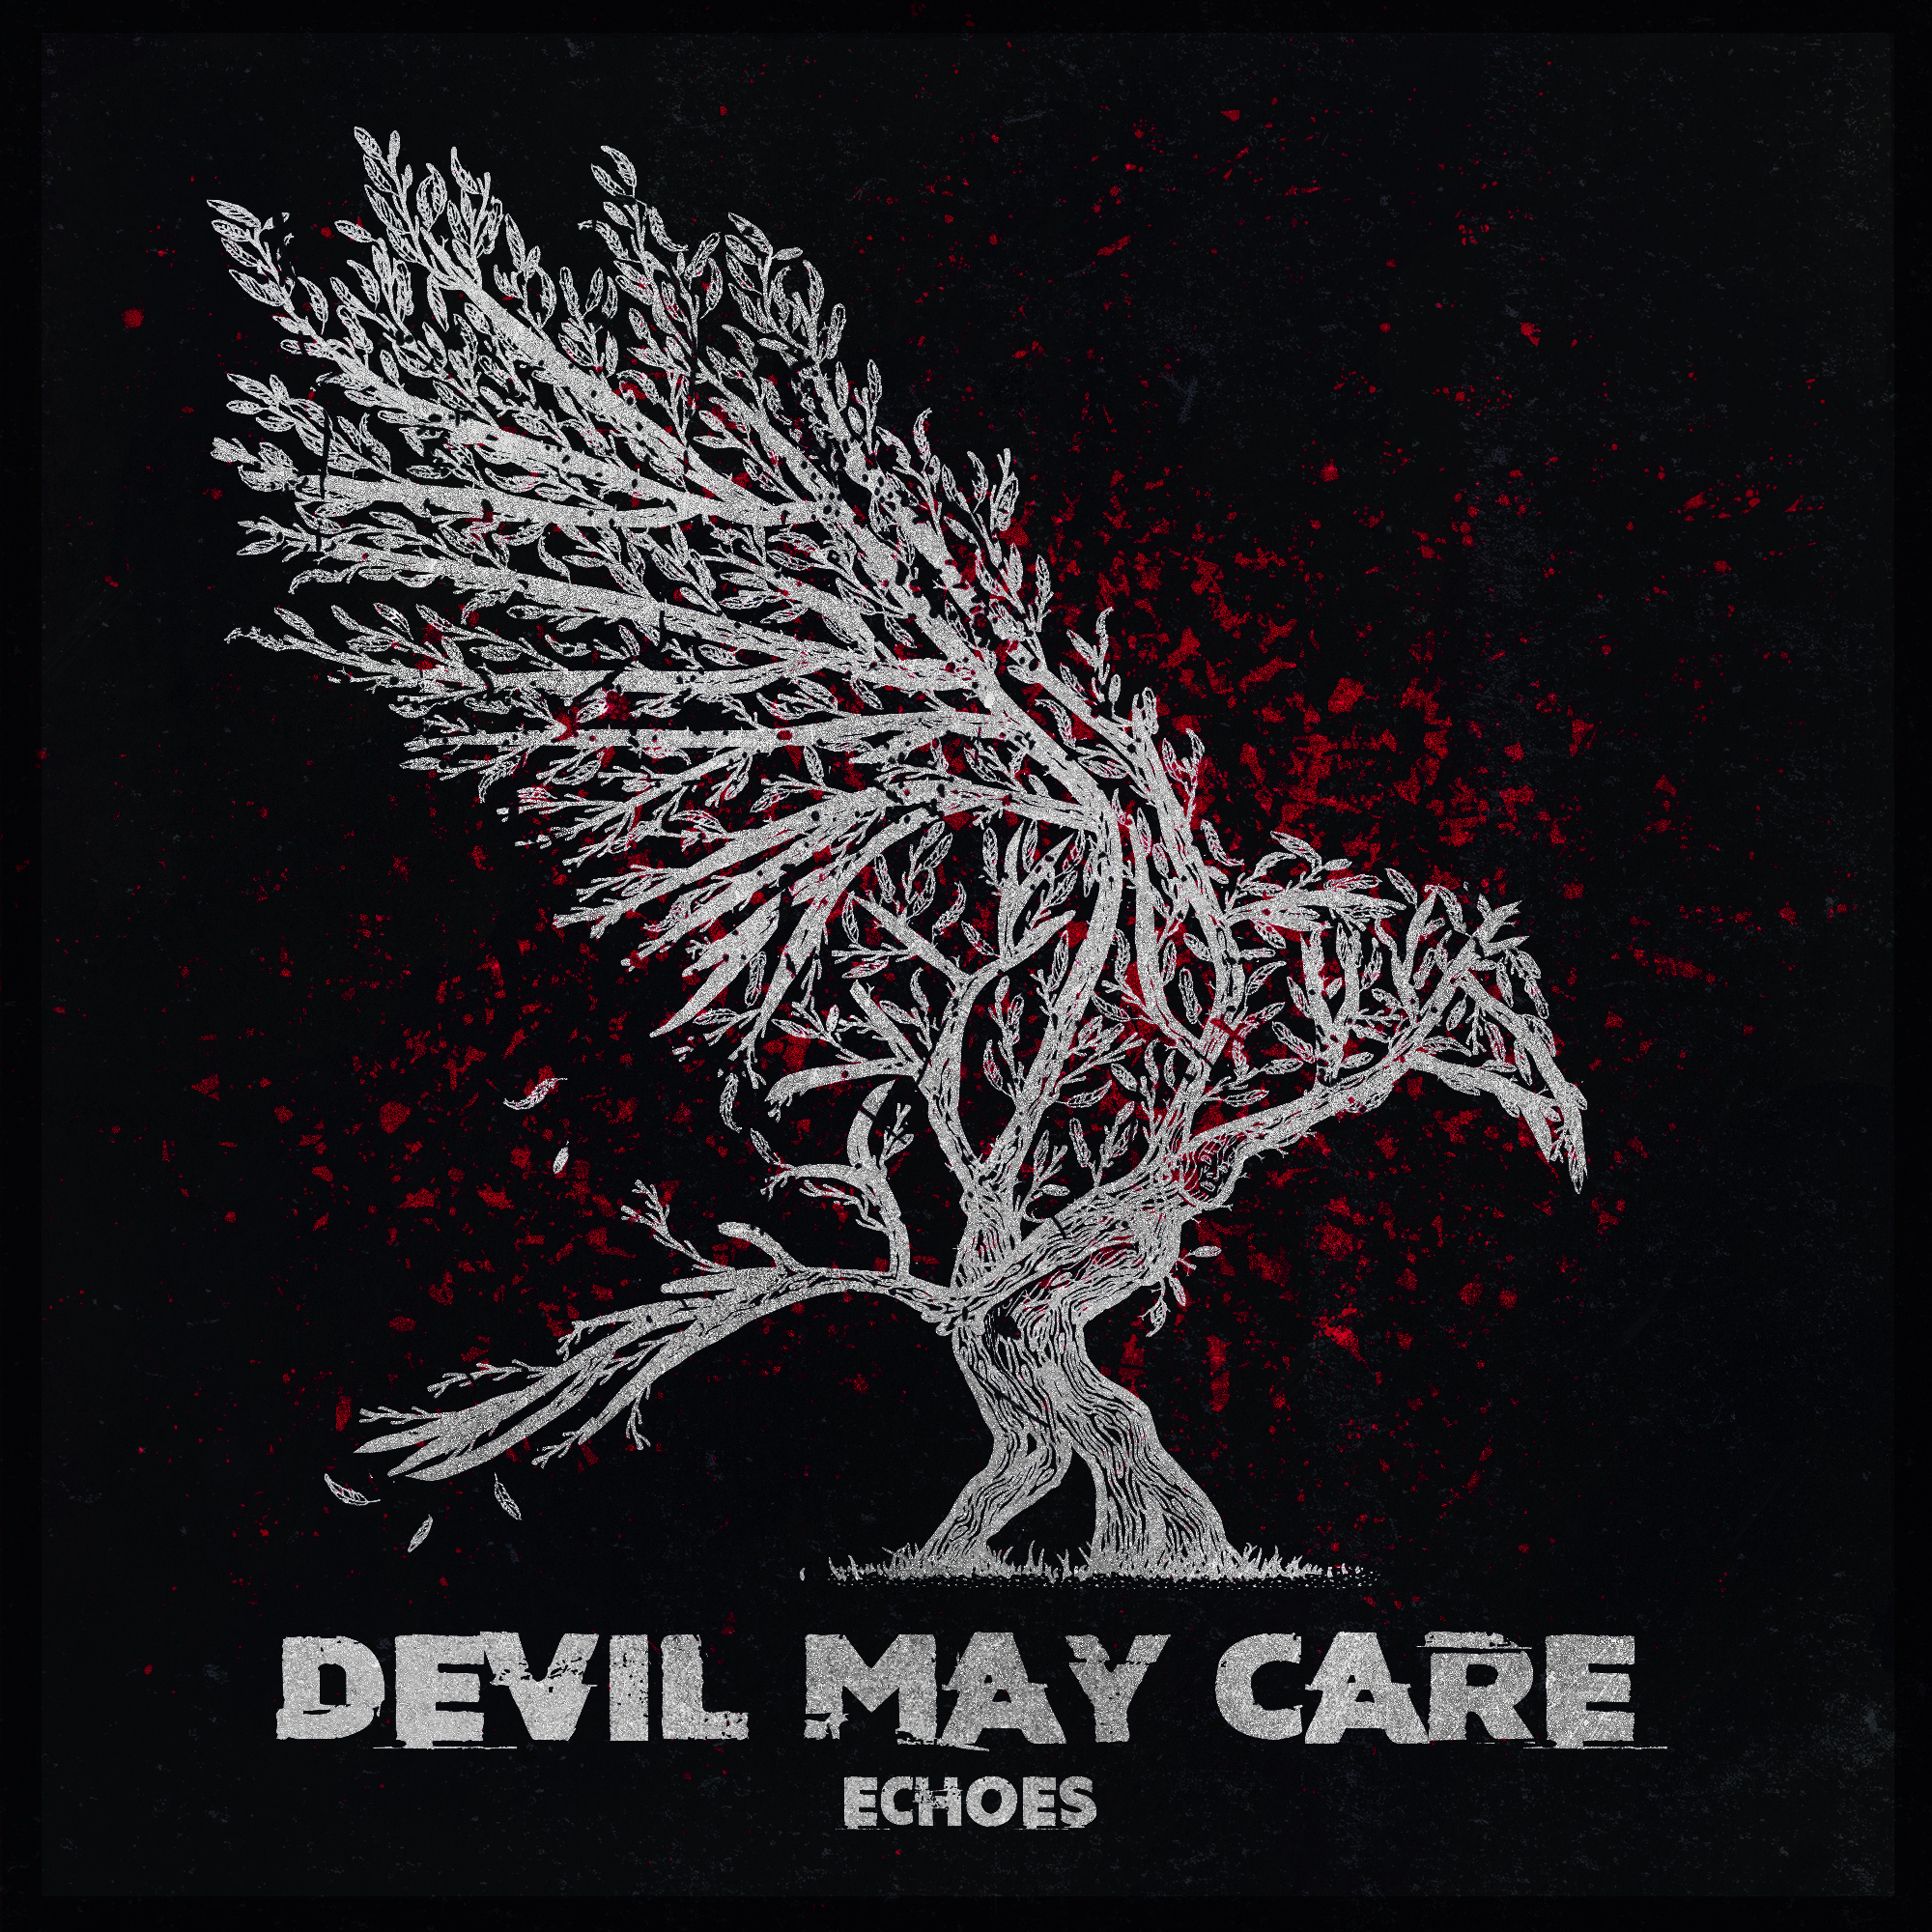 devil-may-care-echoes-spuren-im-sand-album-review